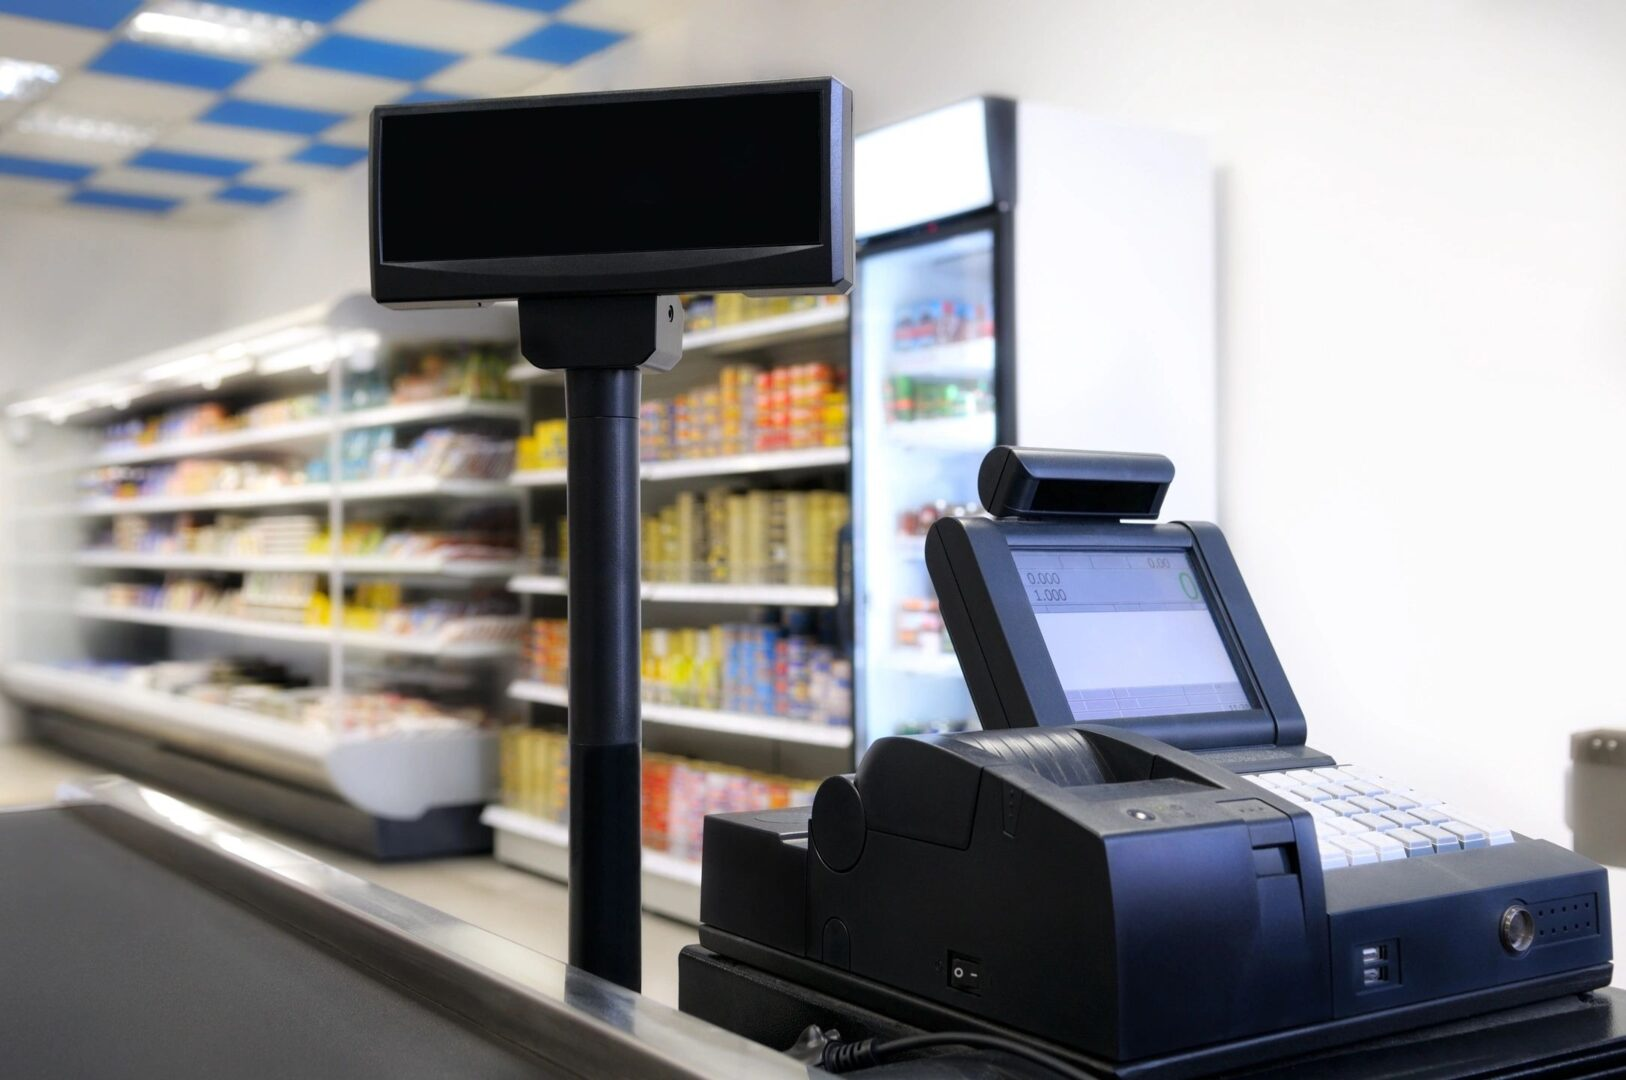 CWI Retail Systems